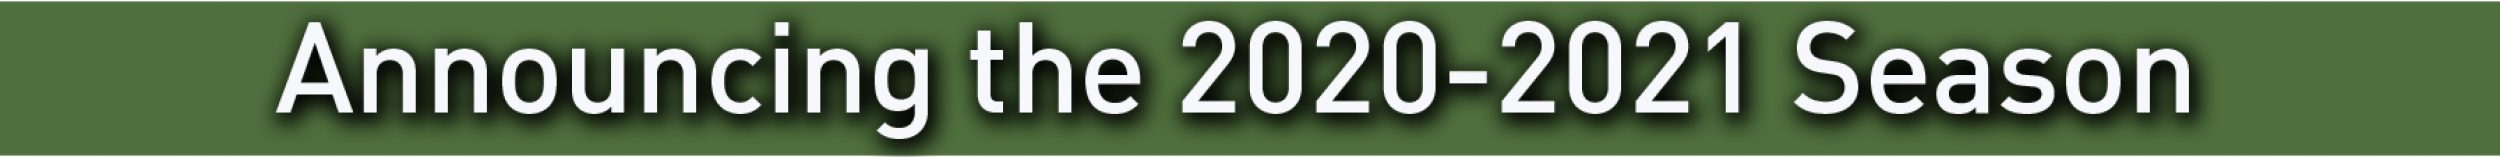 Announcing_THS2020-2021_banner